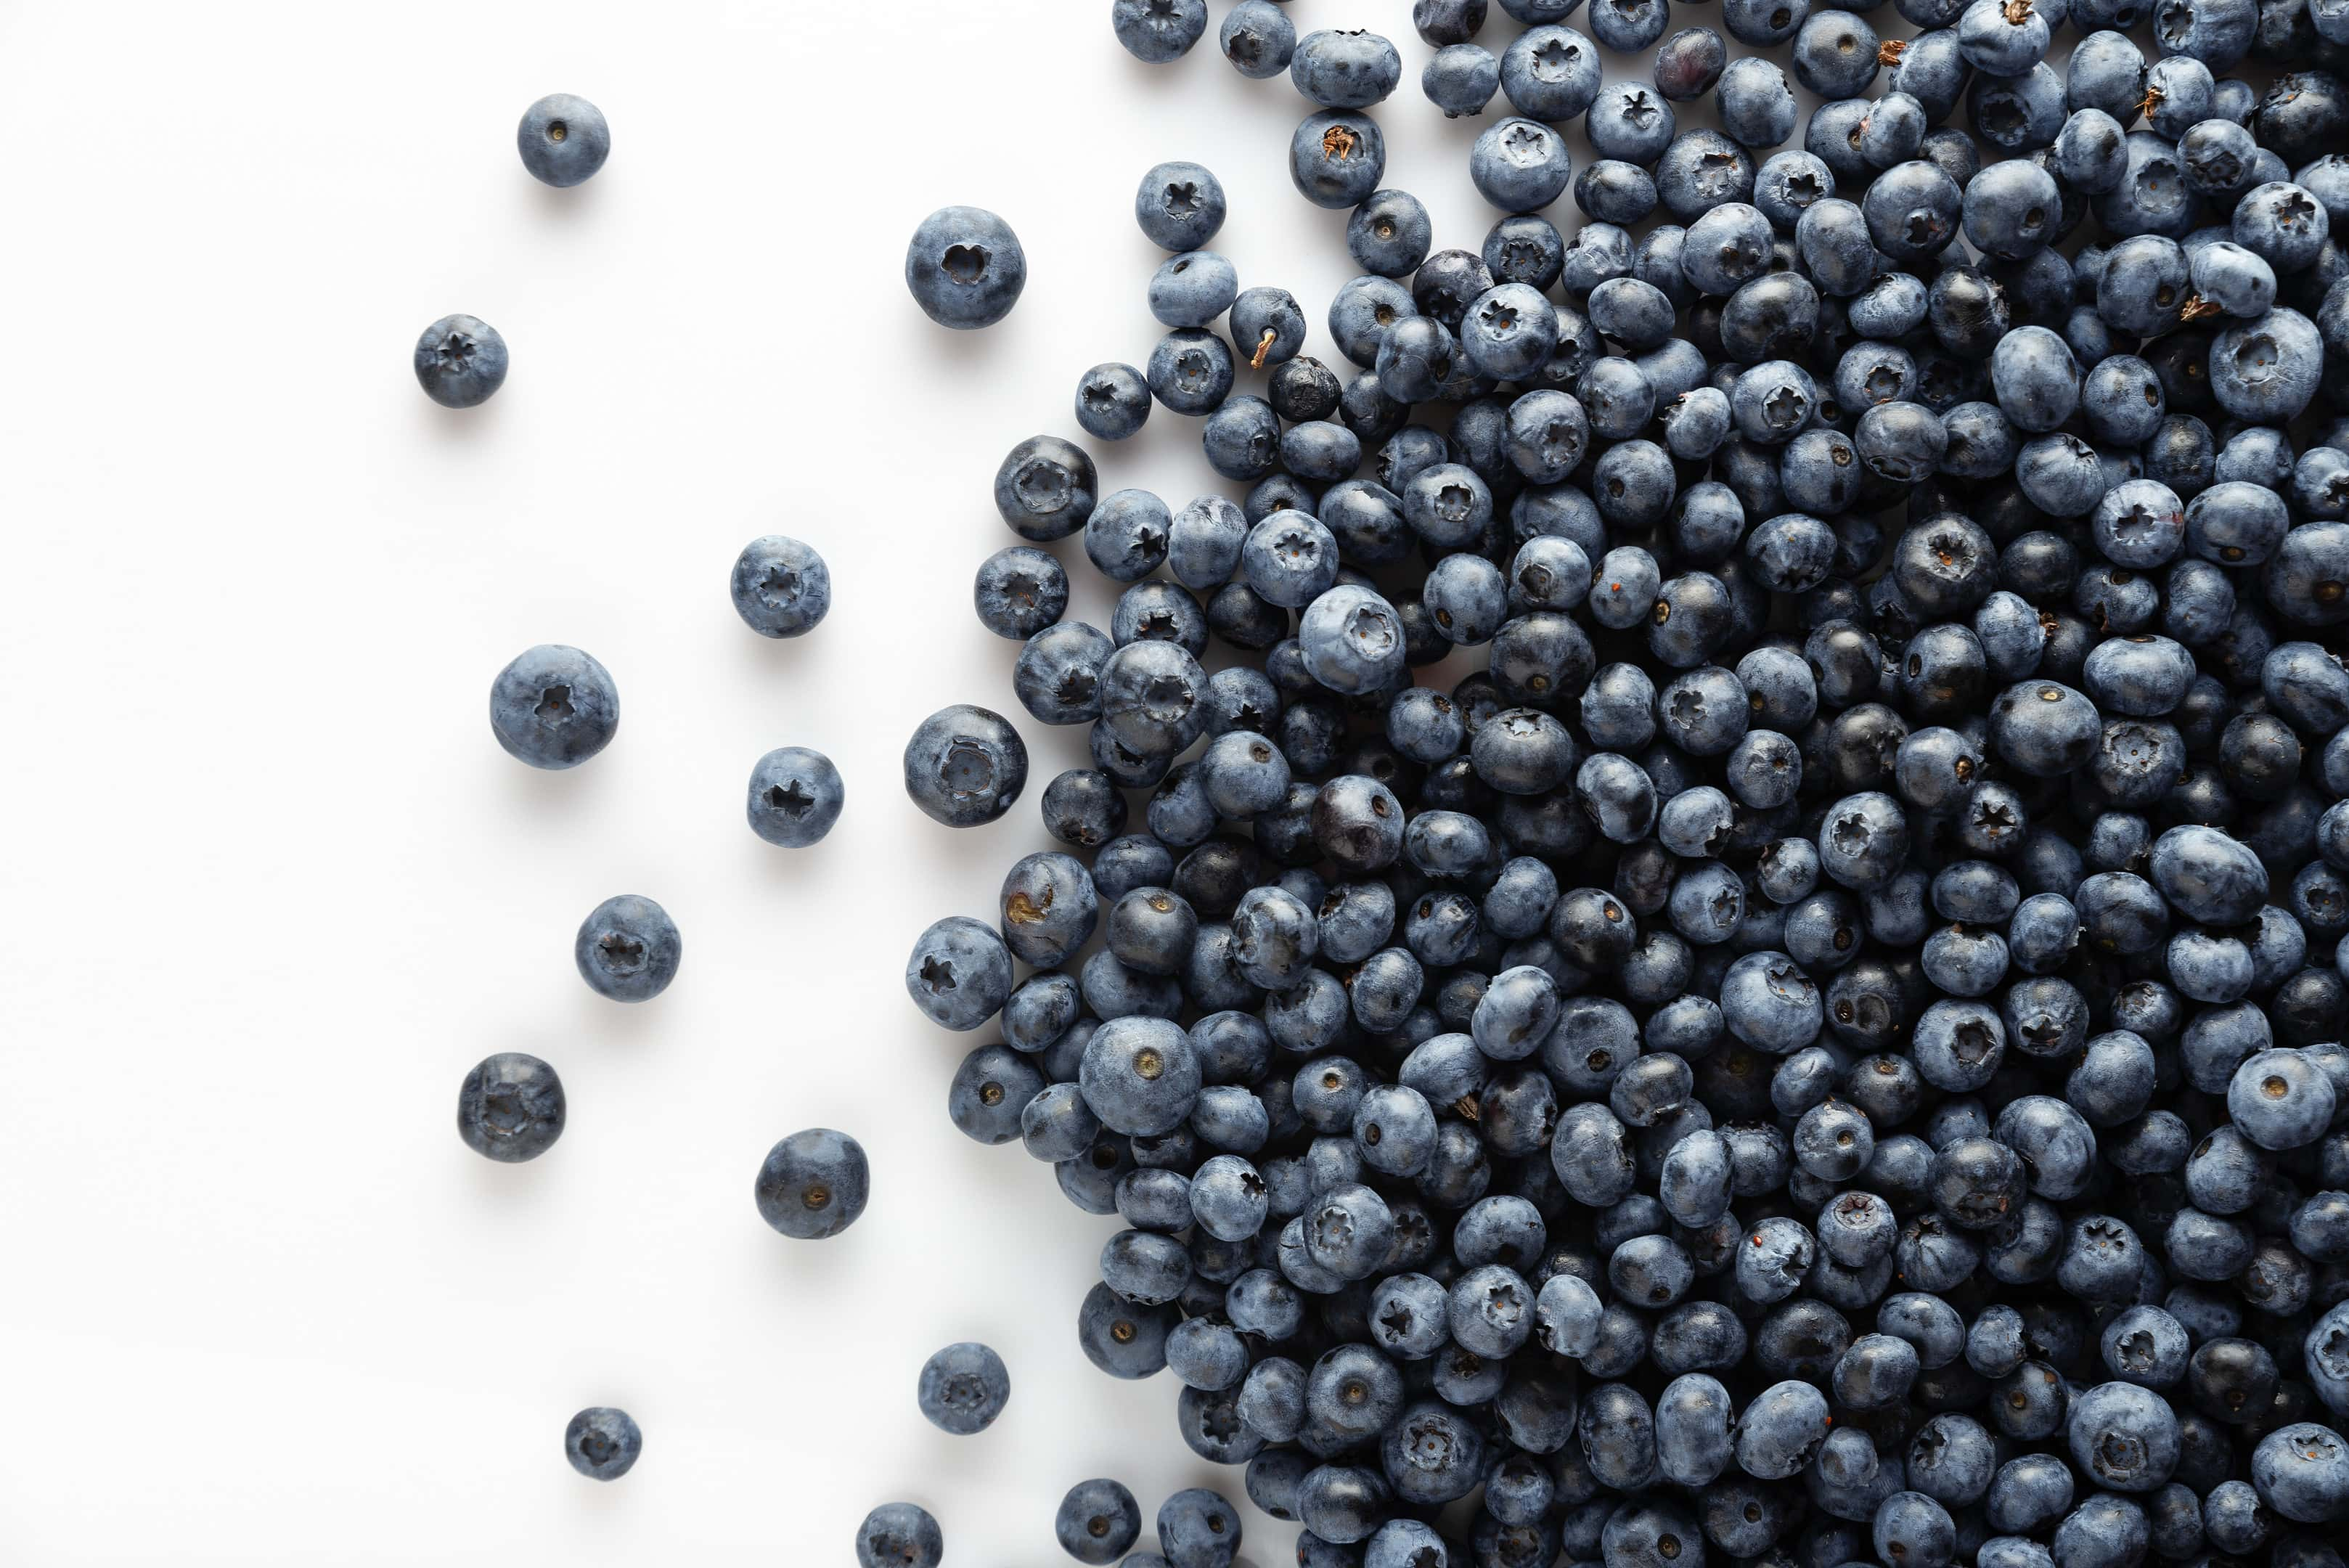 Blueberries scattered on white table